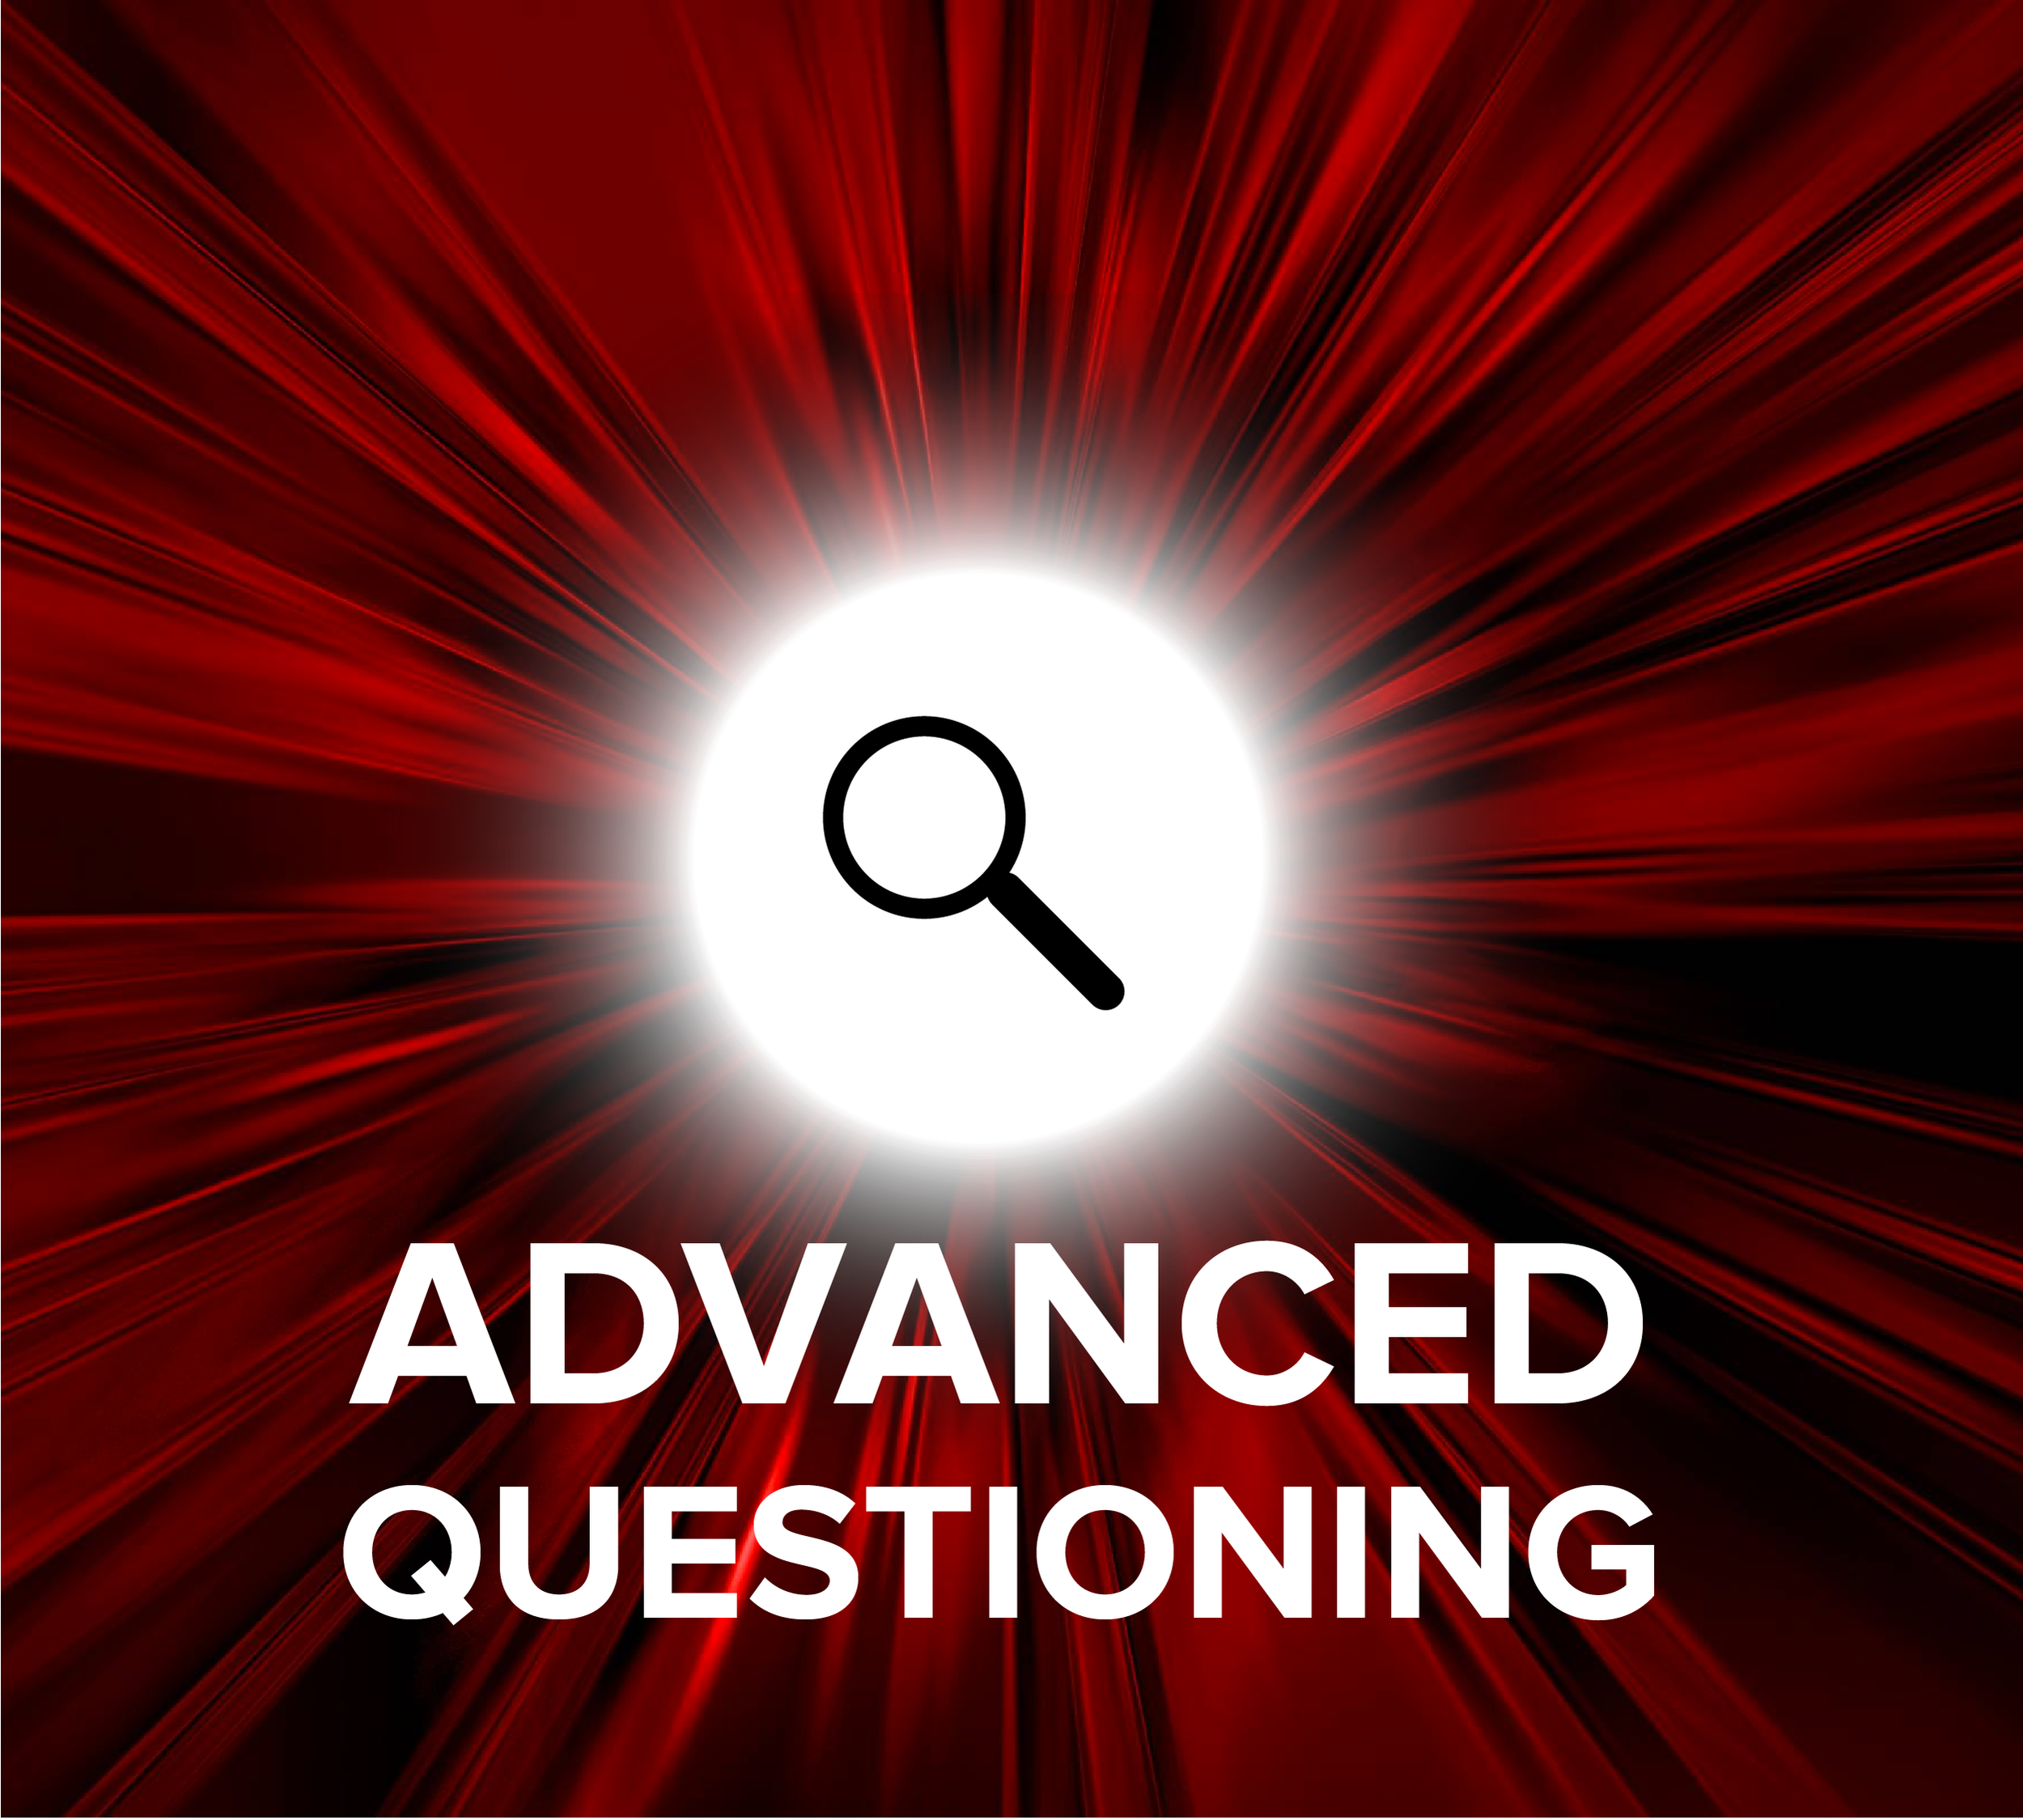 Are you asking questions that Google can answer? In a connected classroom, we need to be asking our students questions that Google CANNOT answer. Learn how to change the way you ask questions in a way that promotes curiosity and forces students to use problem solving and higher order thinking skills.